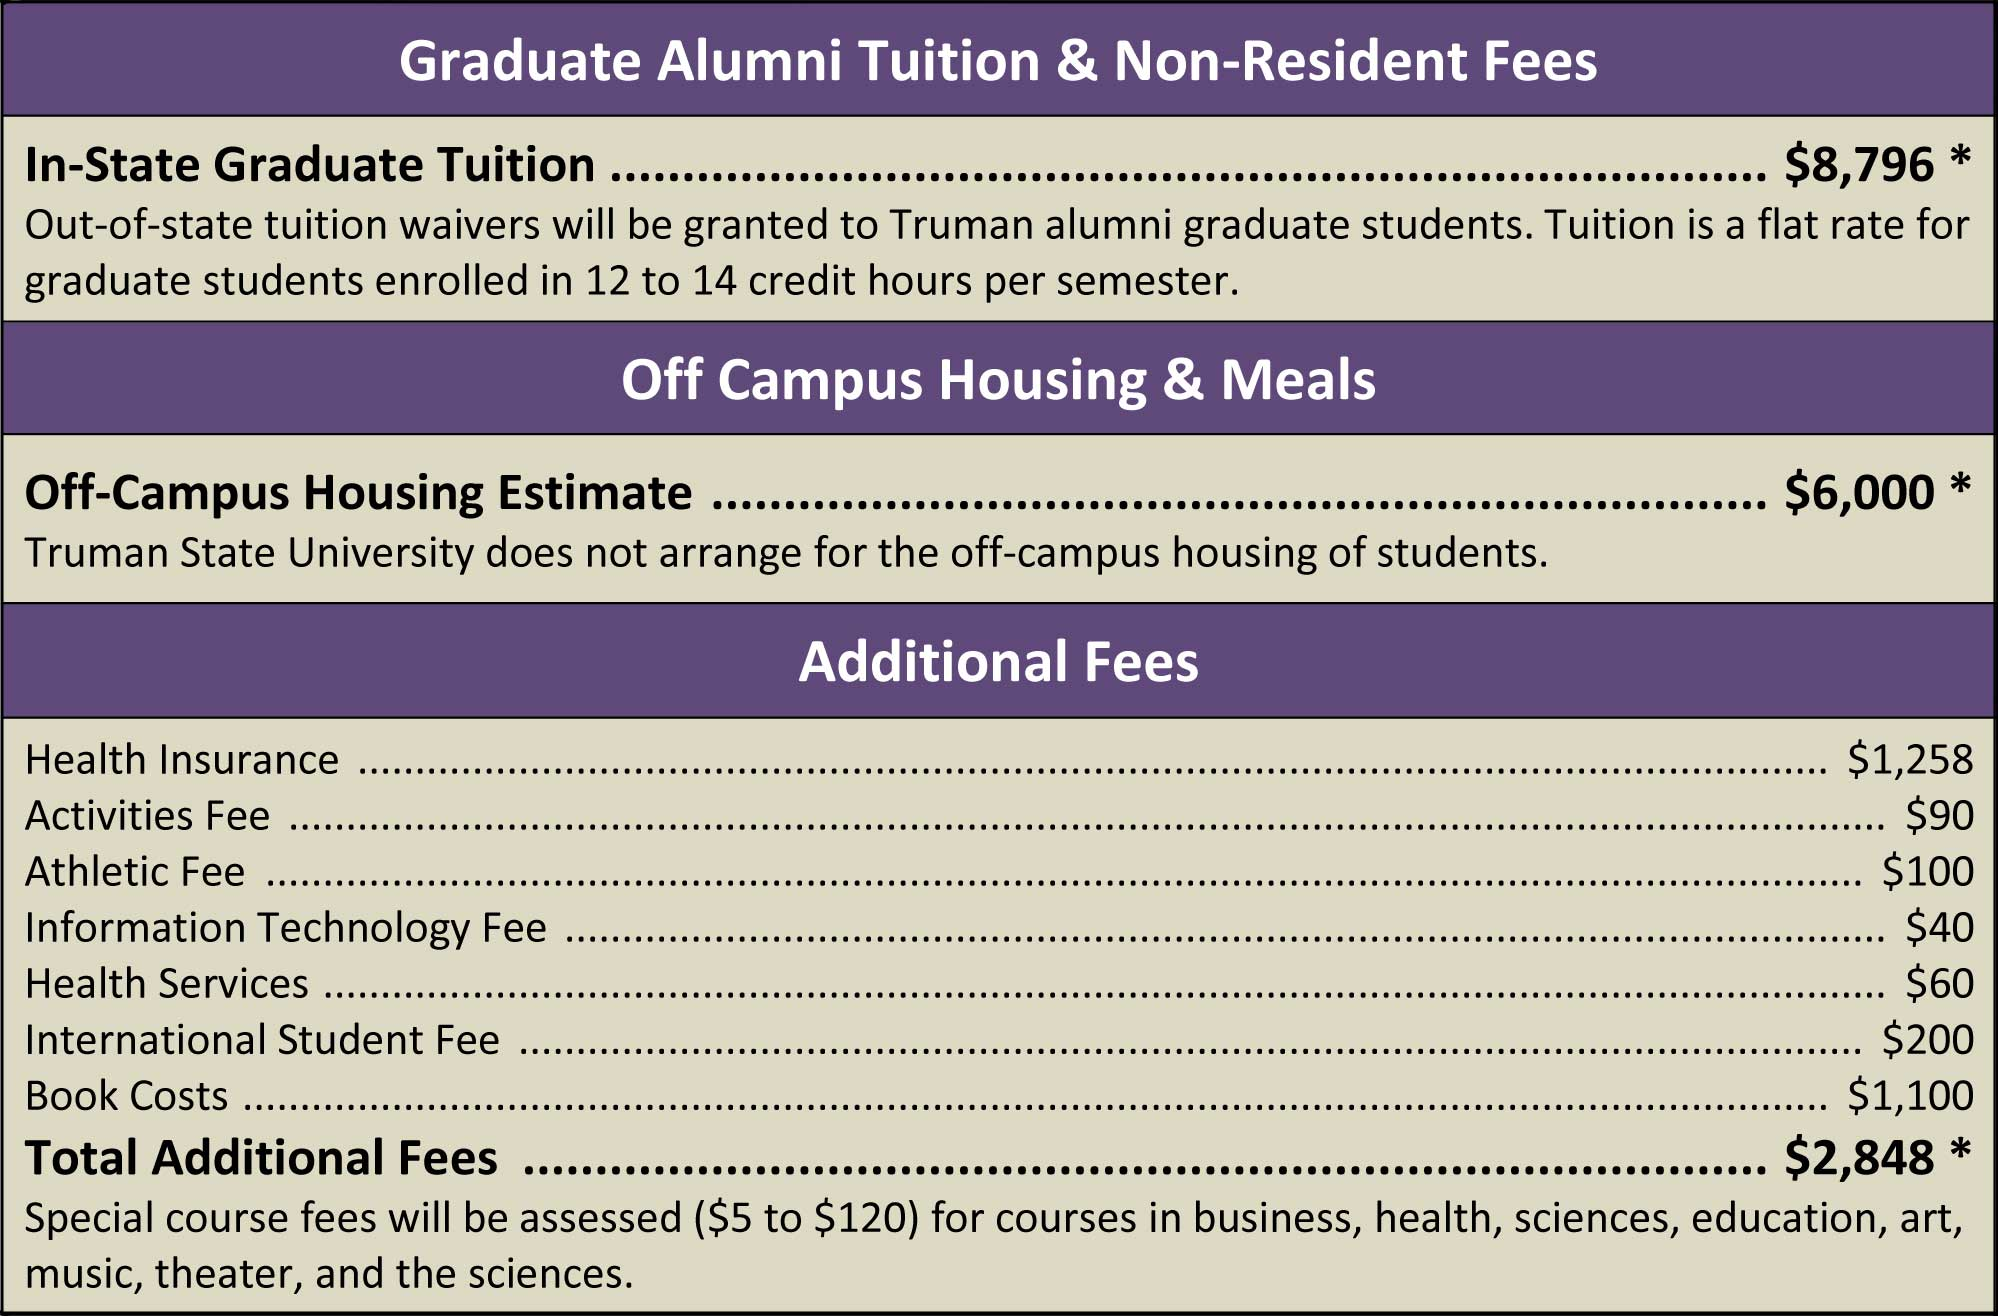 International Students: Graduate Alumni Tuition & Non-Resident Fees 2015-2016